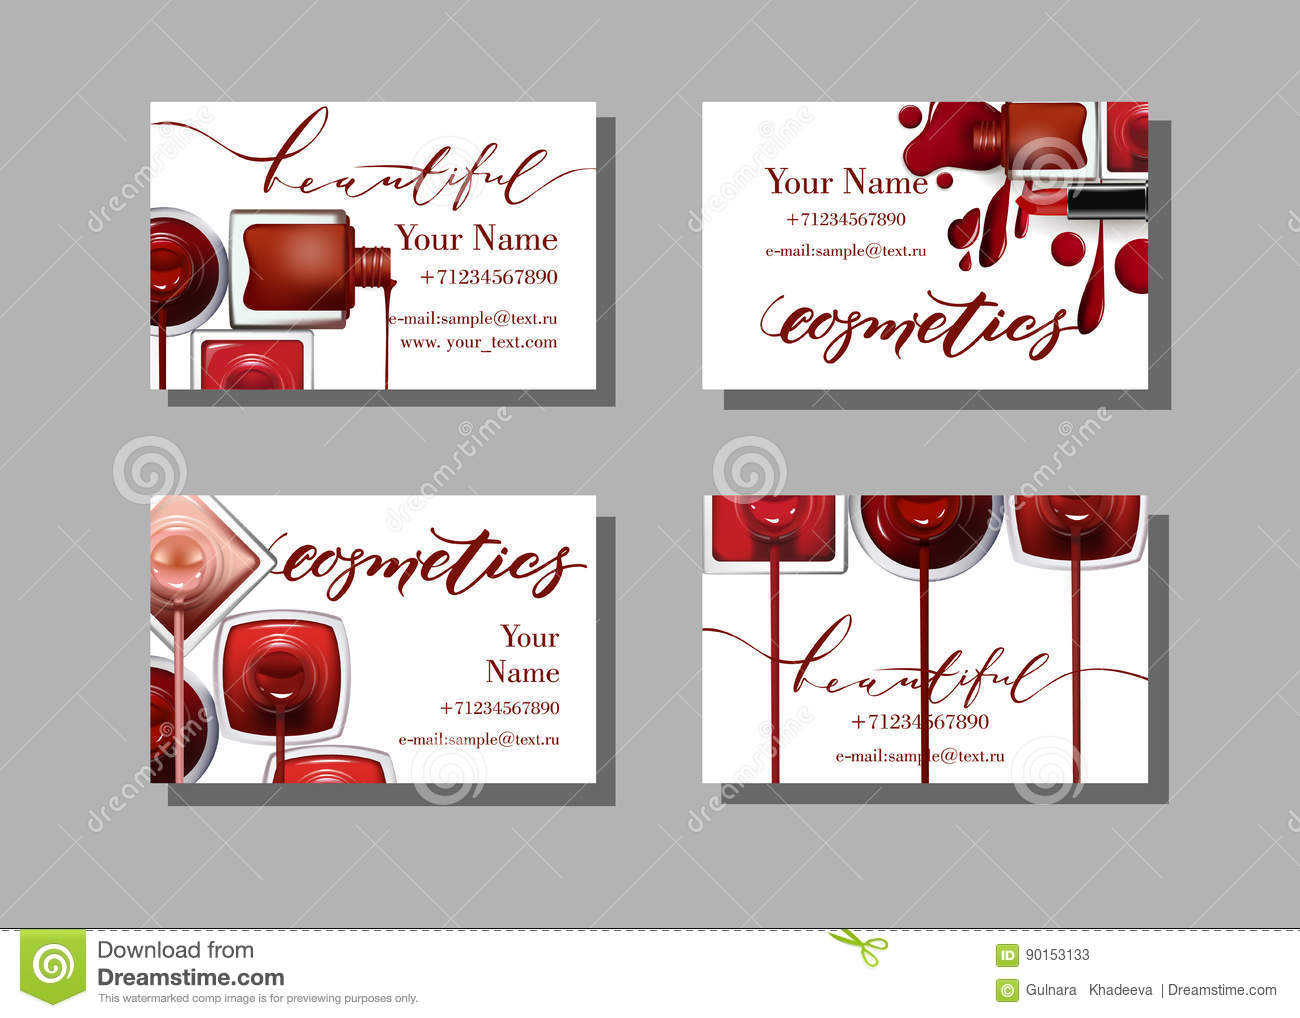 Makeup Artist Business Card. Vector Template With Makeup